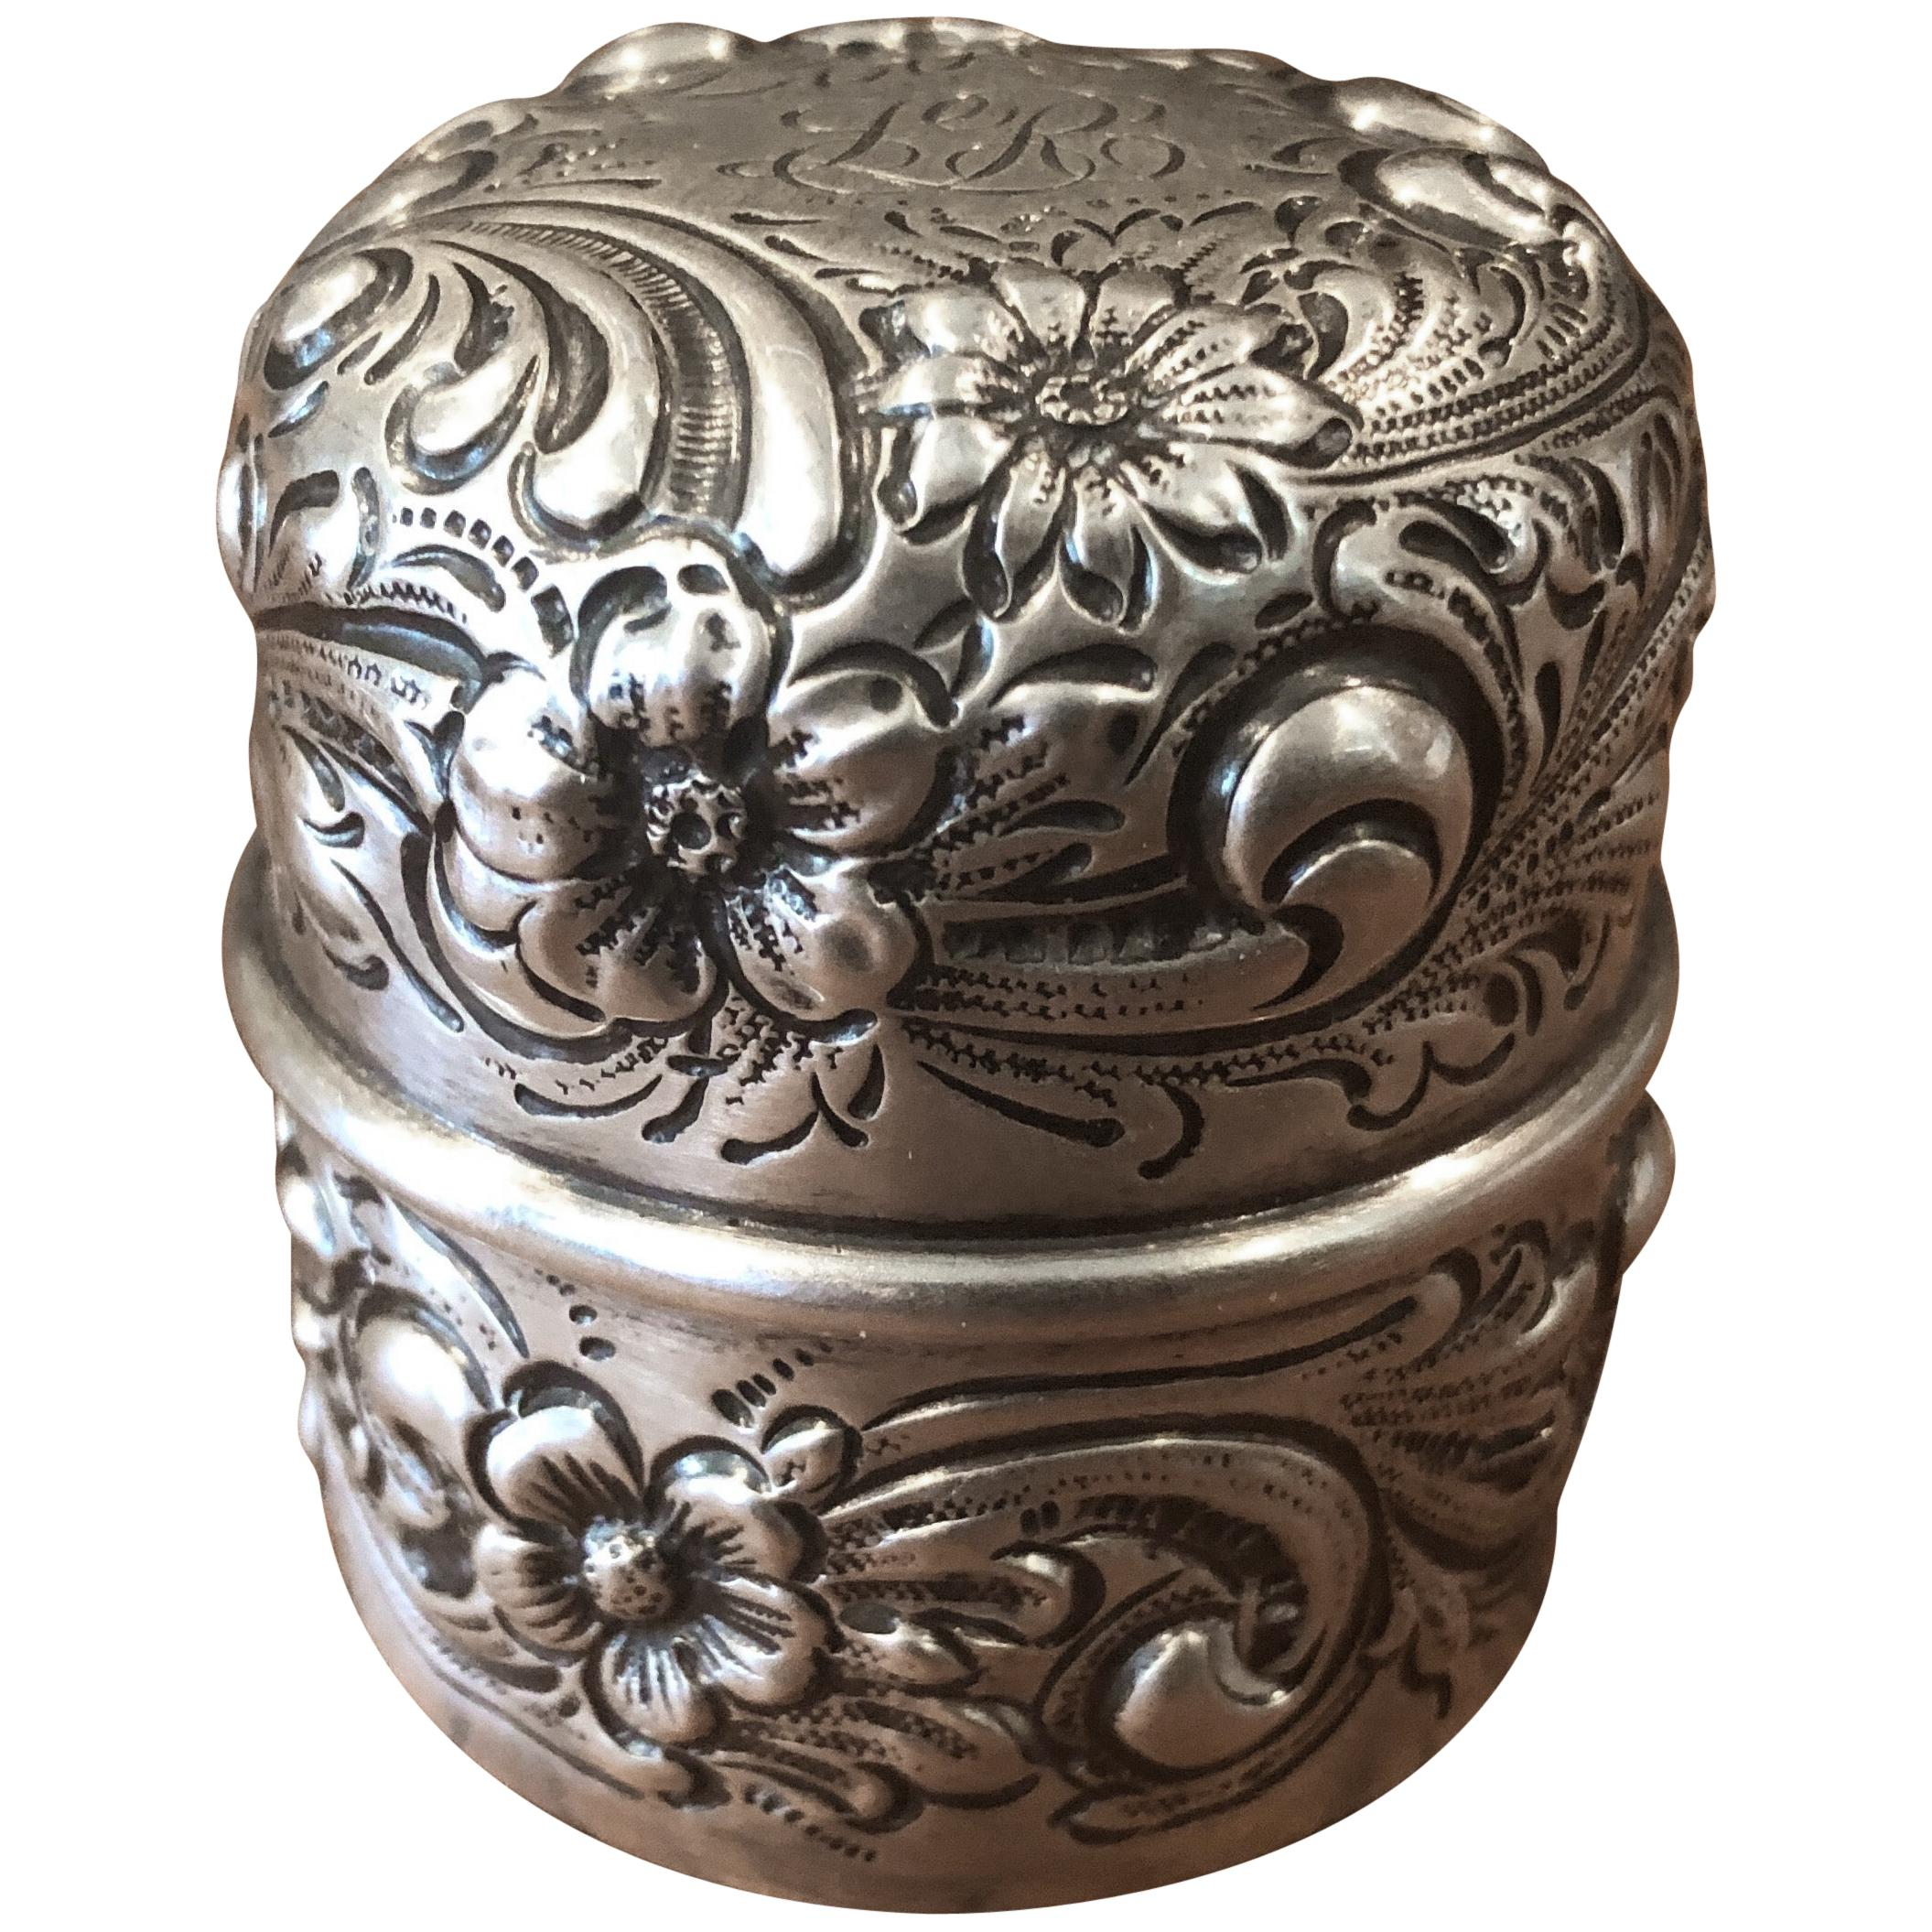 Antique Repousse Sterling Inkwell by Howard & Co.